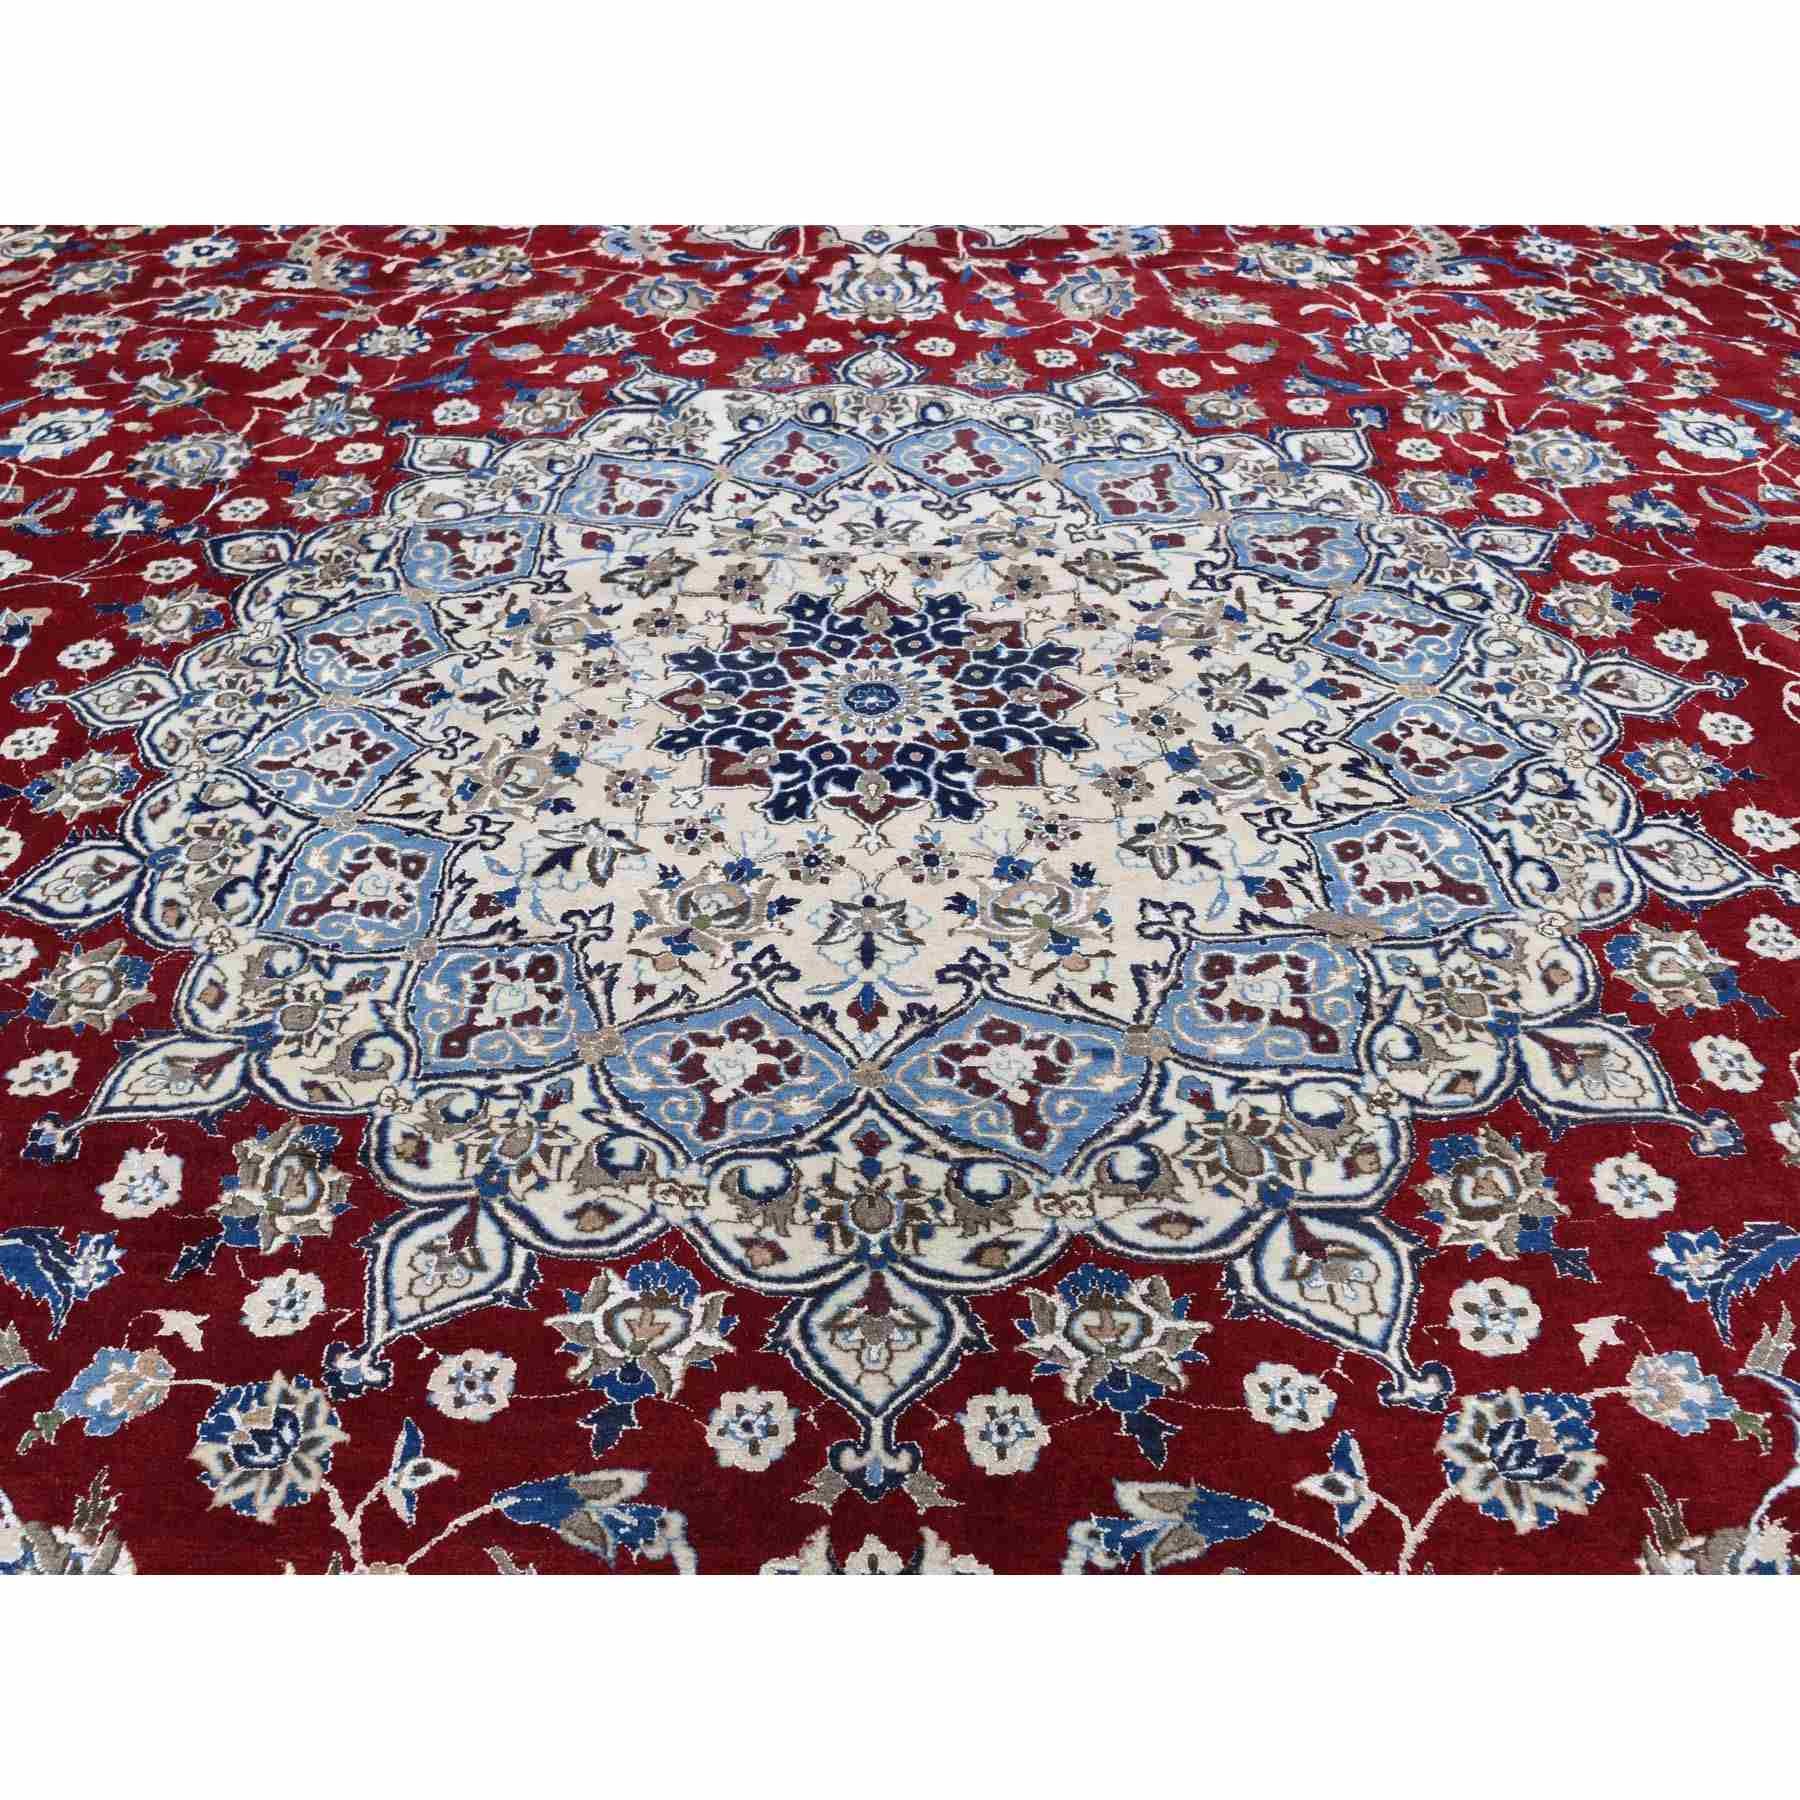 Fine-Oriental-Hand-Knotted-Rug-240390